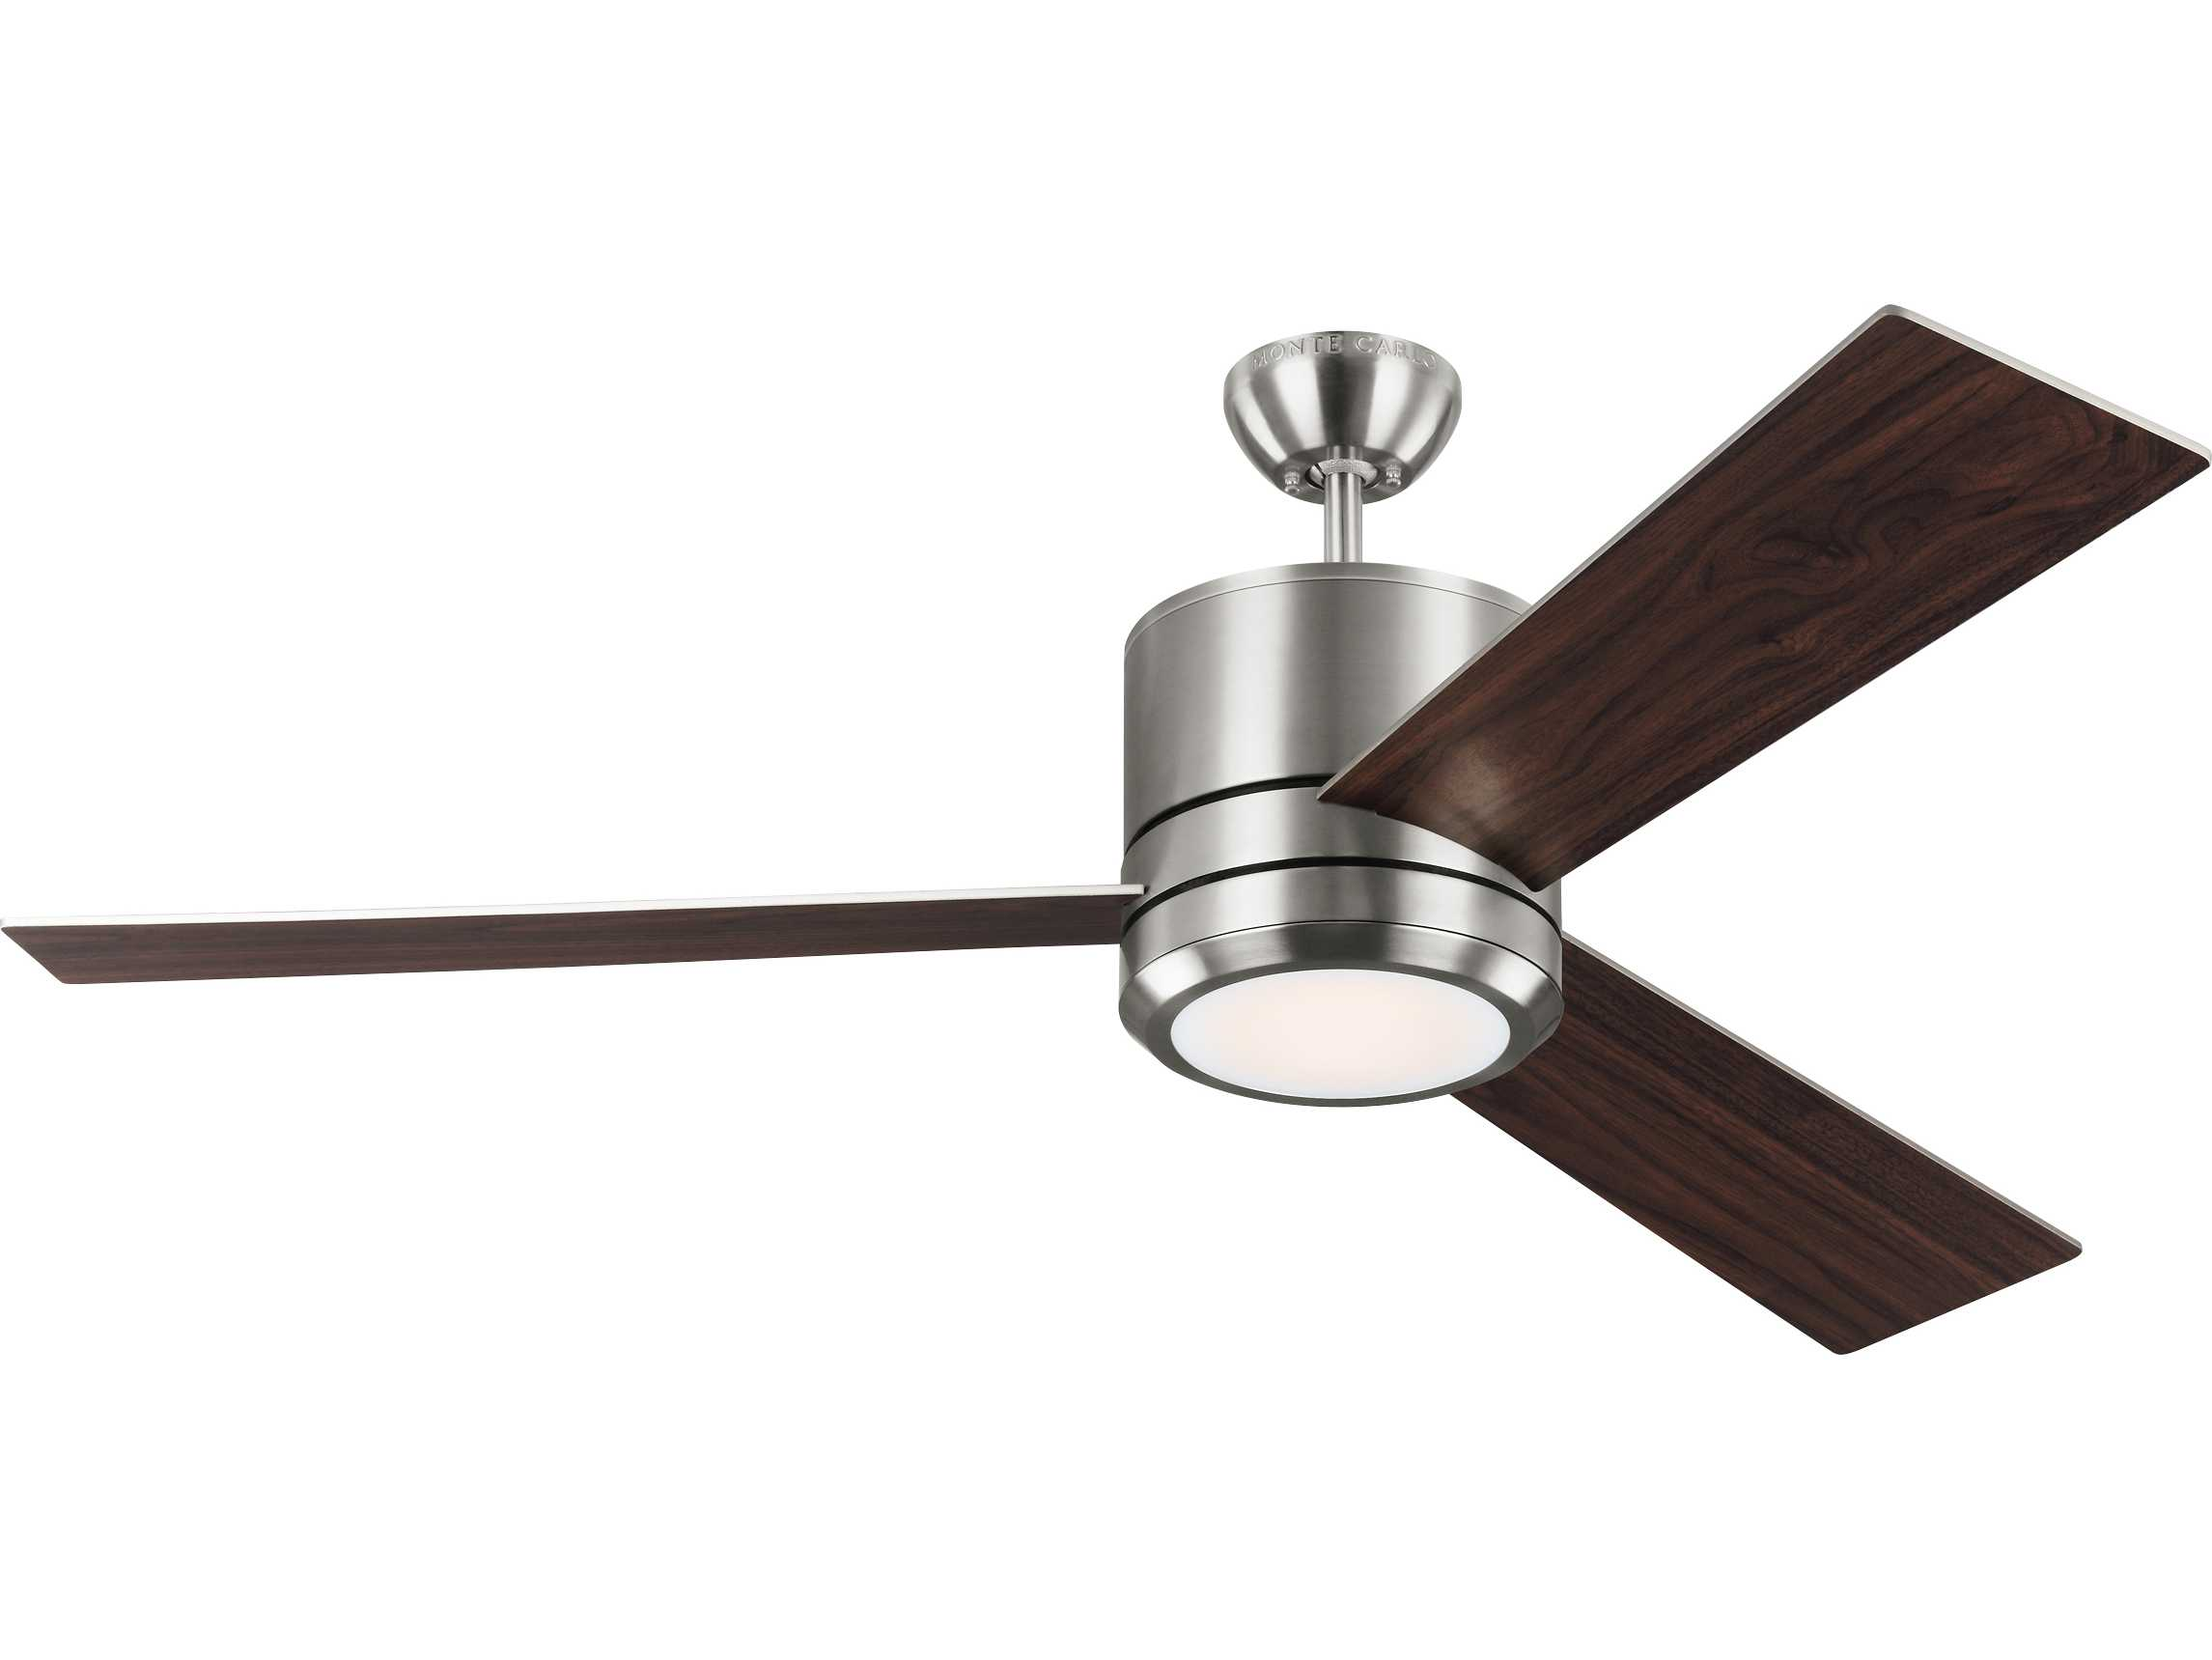 Monte Carlo Fans Vision Max Brushed Steel 56 Wide Led Indoor Outdoor Ceiling